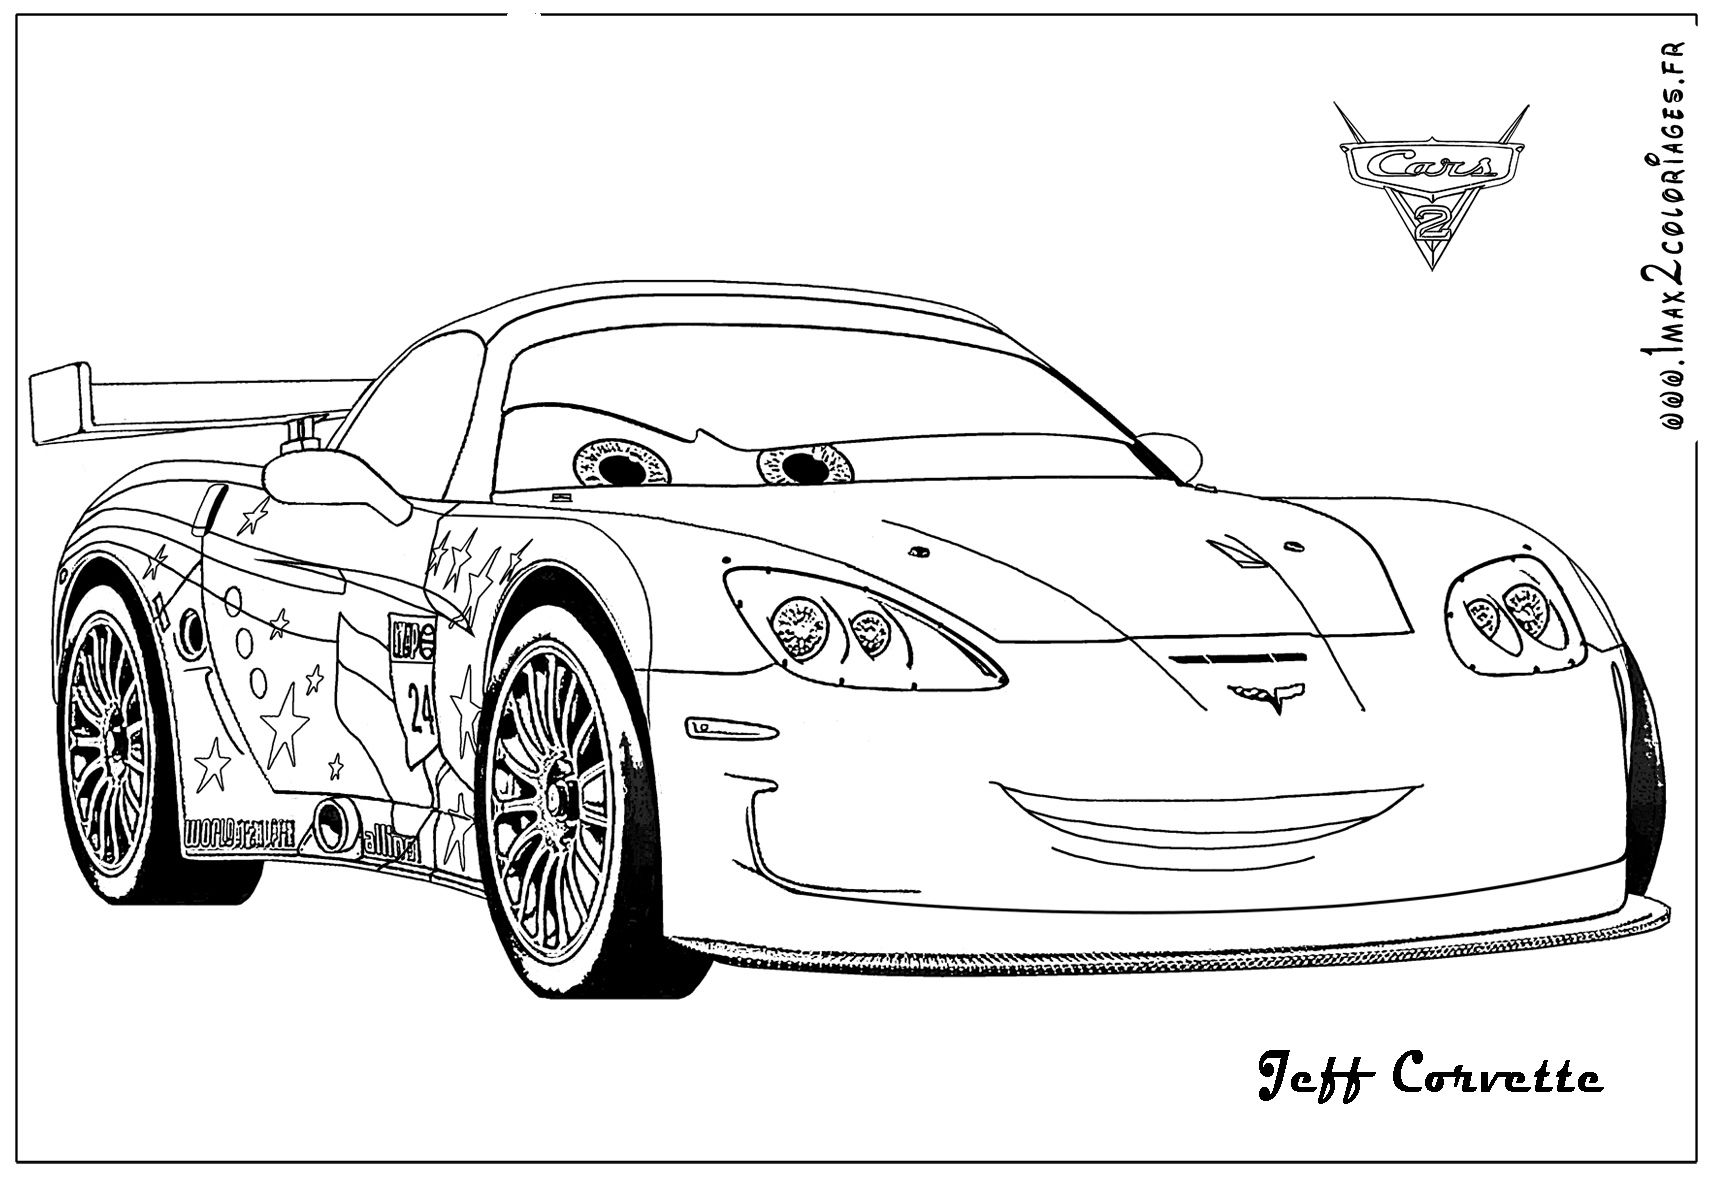 Cars 2 Jeff Corvette Coloring Page Coloring pages, Cars